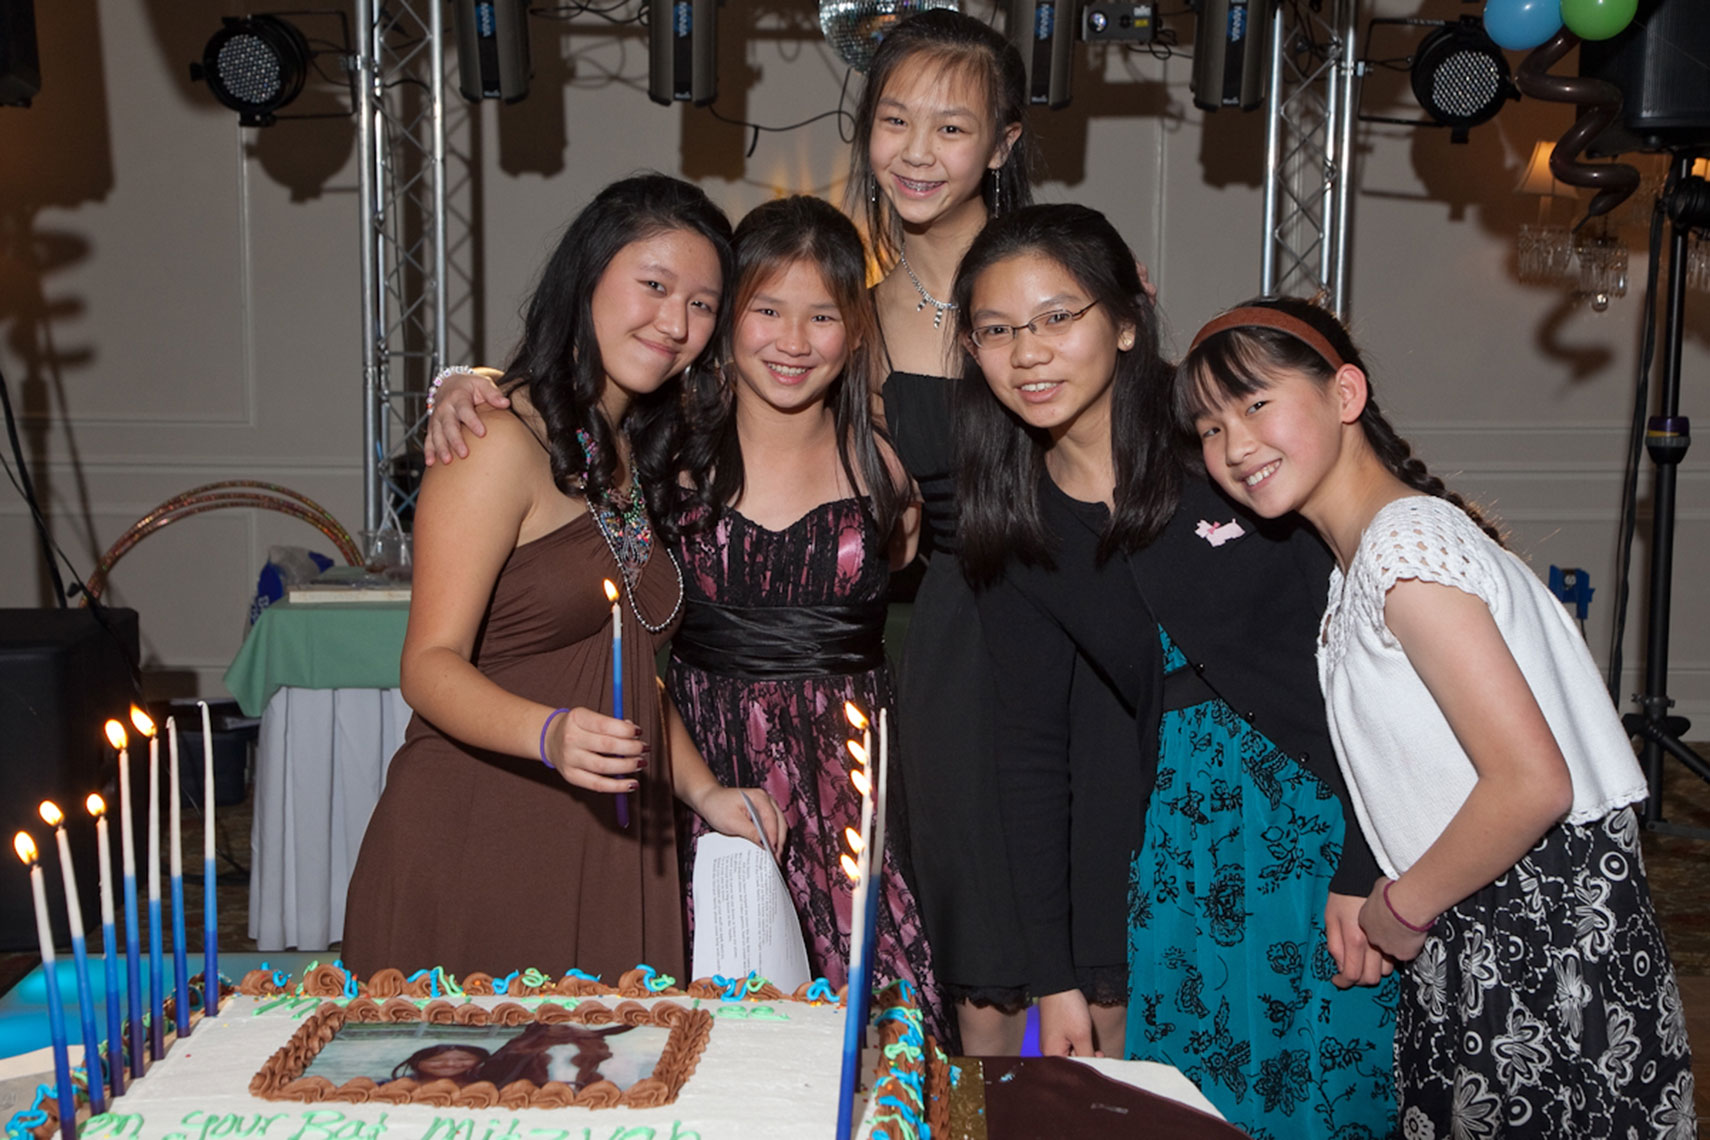 Lee With Friends For Cake Candle Lighting